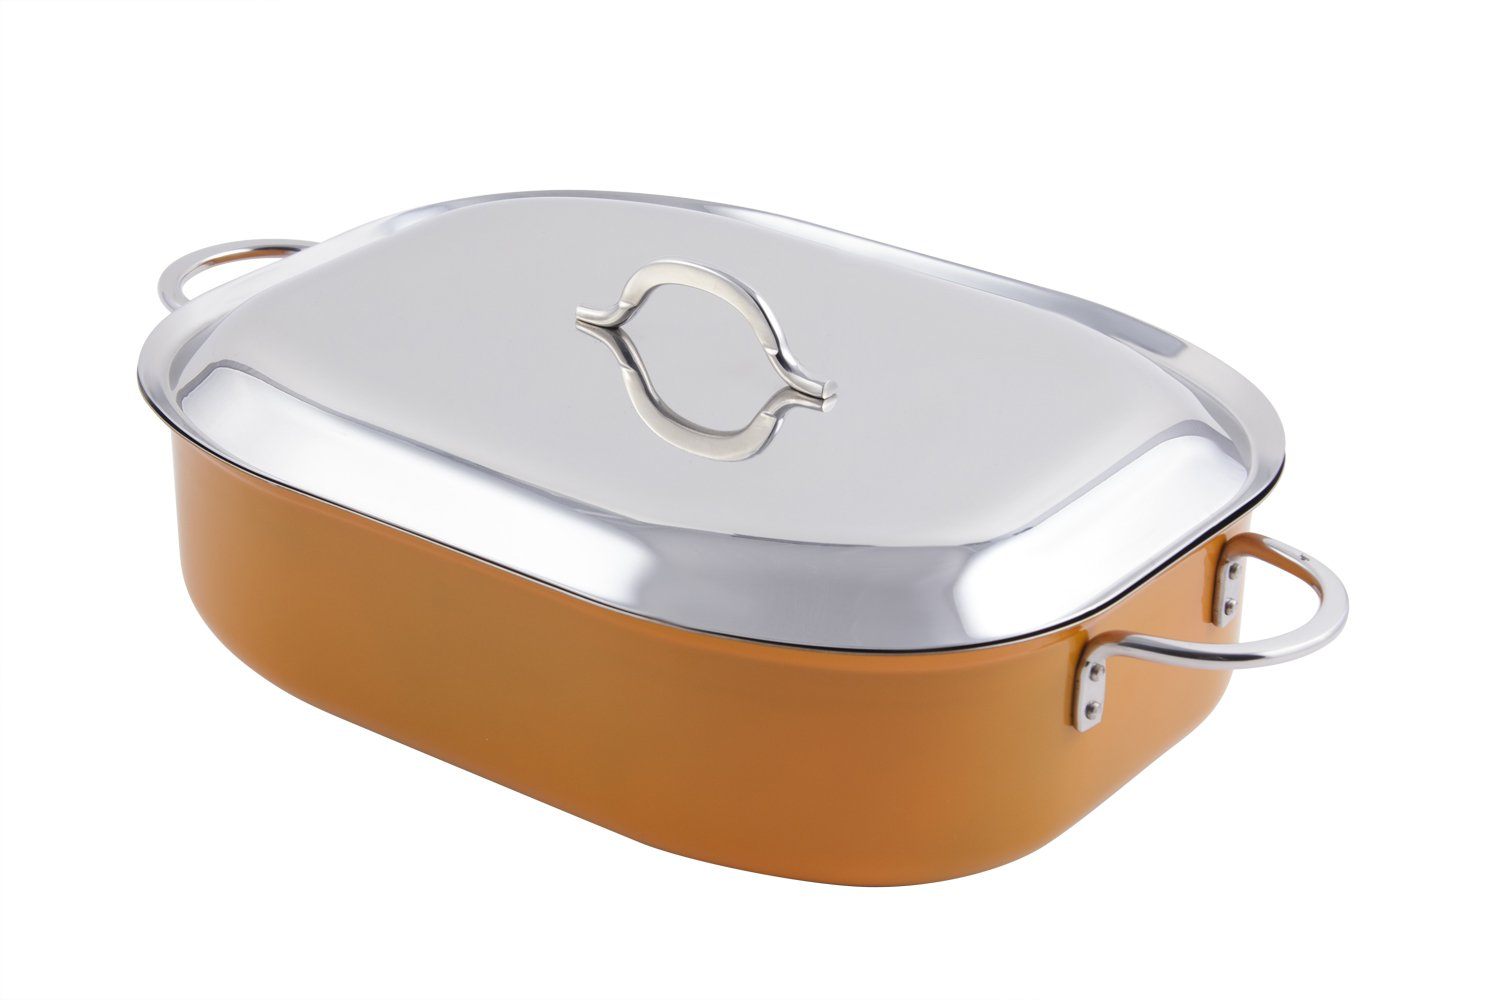 Bon Chef 60004CFCLDOrange Stainless Steel Induction Bottom Classic Country French Oven with Lid, 7 quart Capacity, 15'' Length x 11'' Width x 4'' Height, Orange